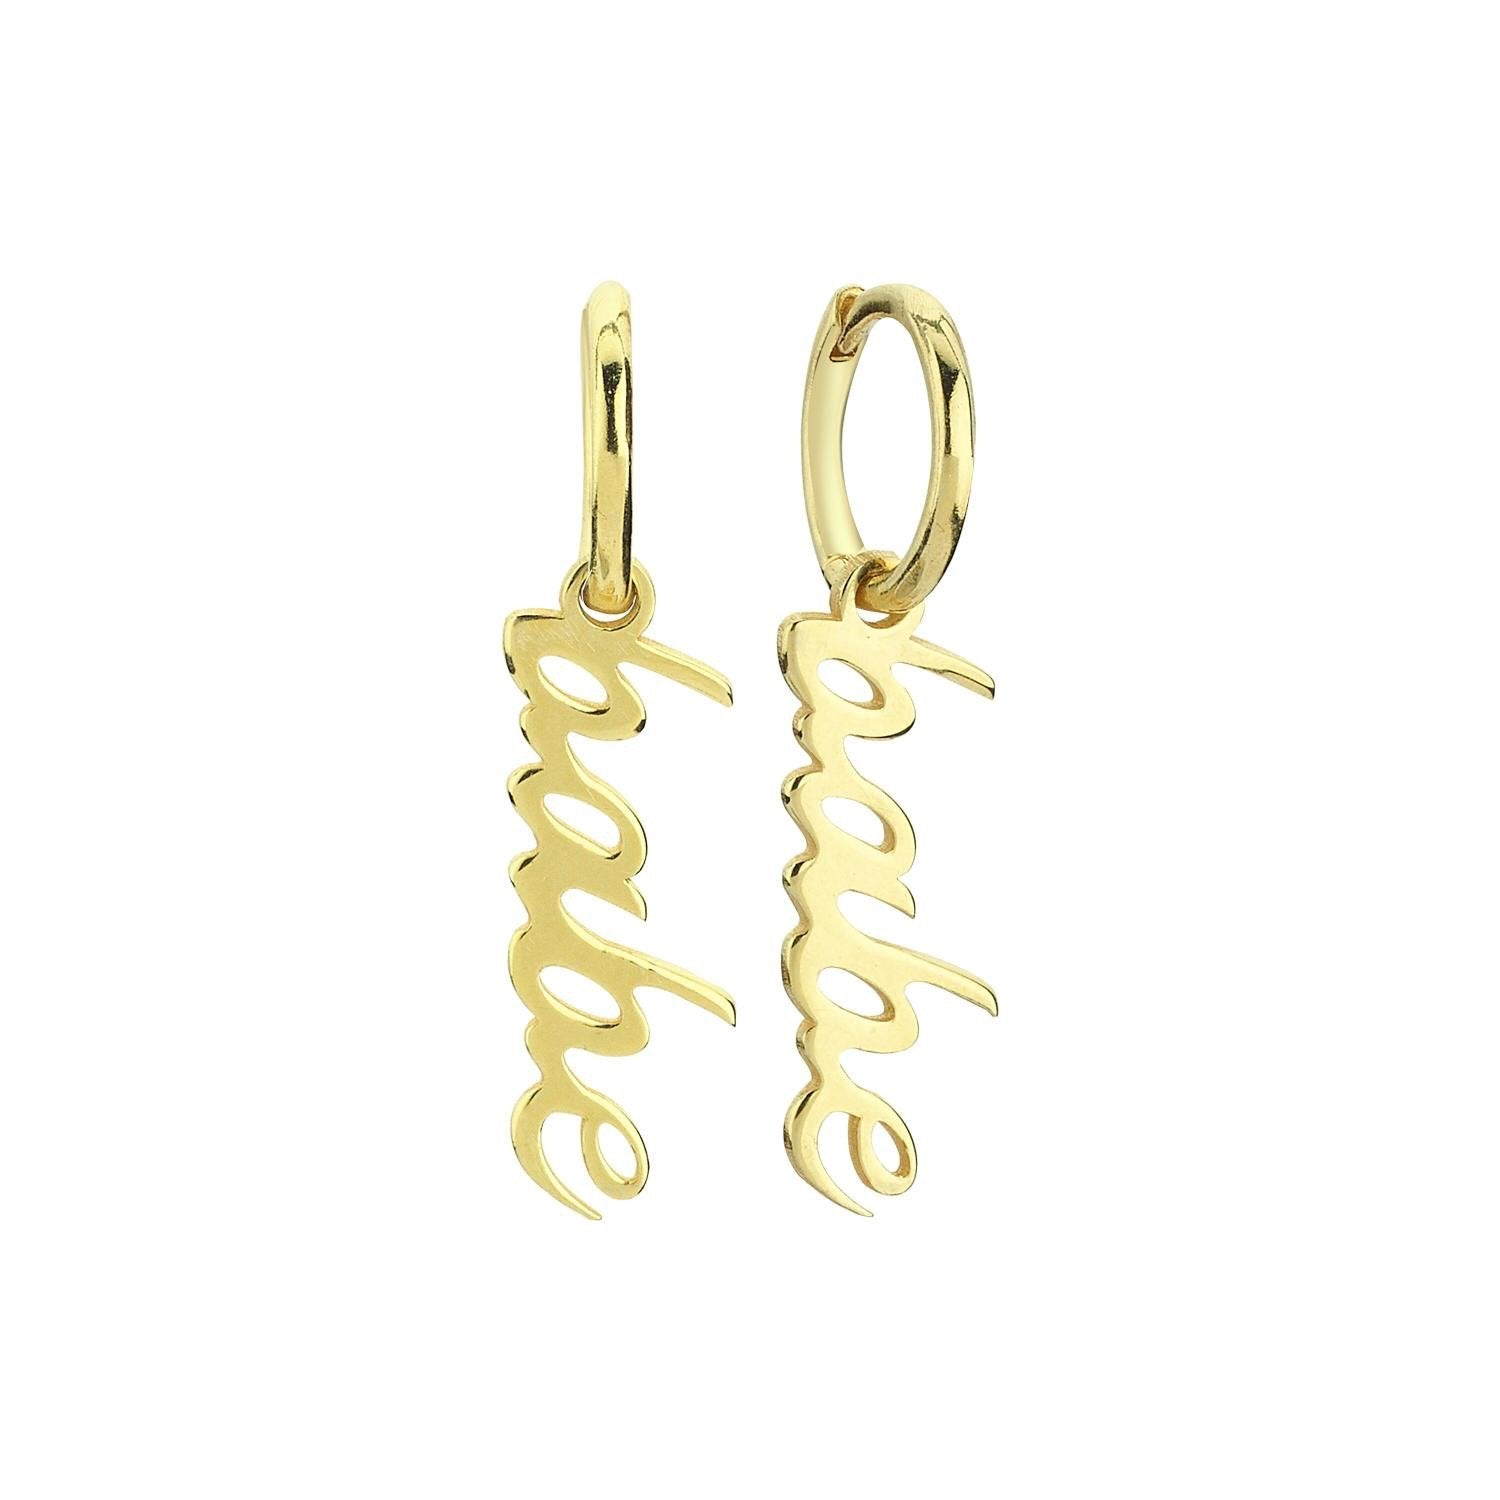 Babe dangle script earrings